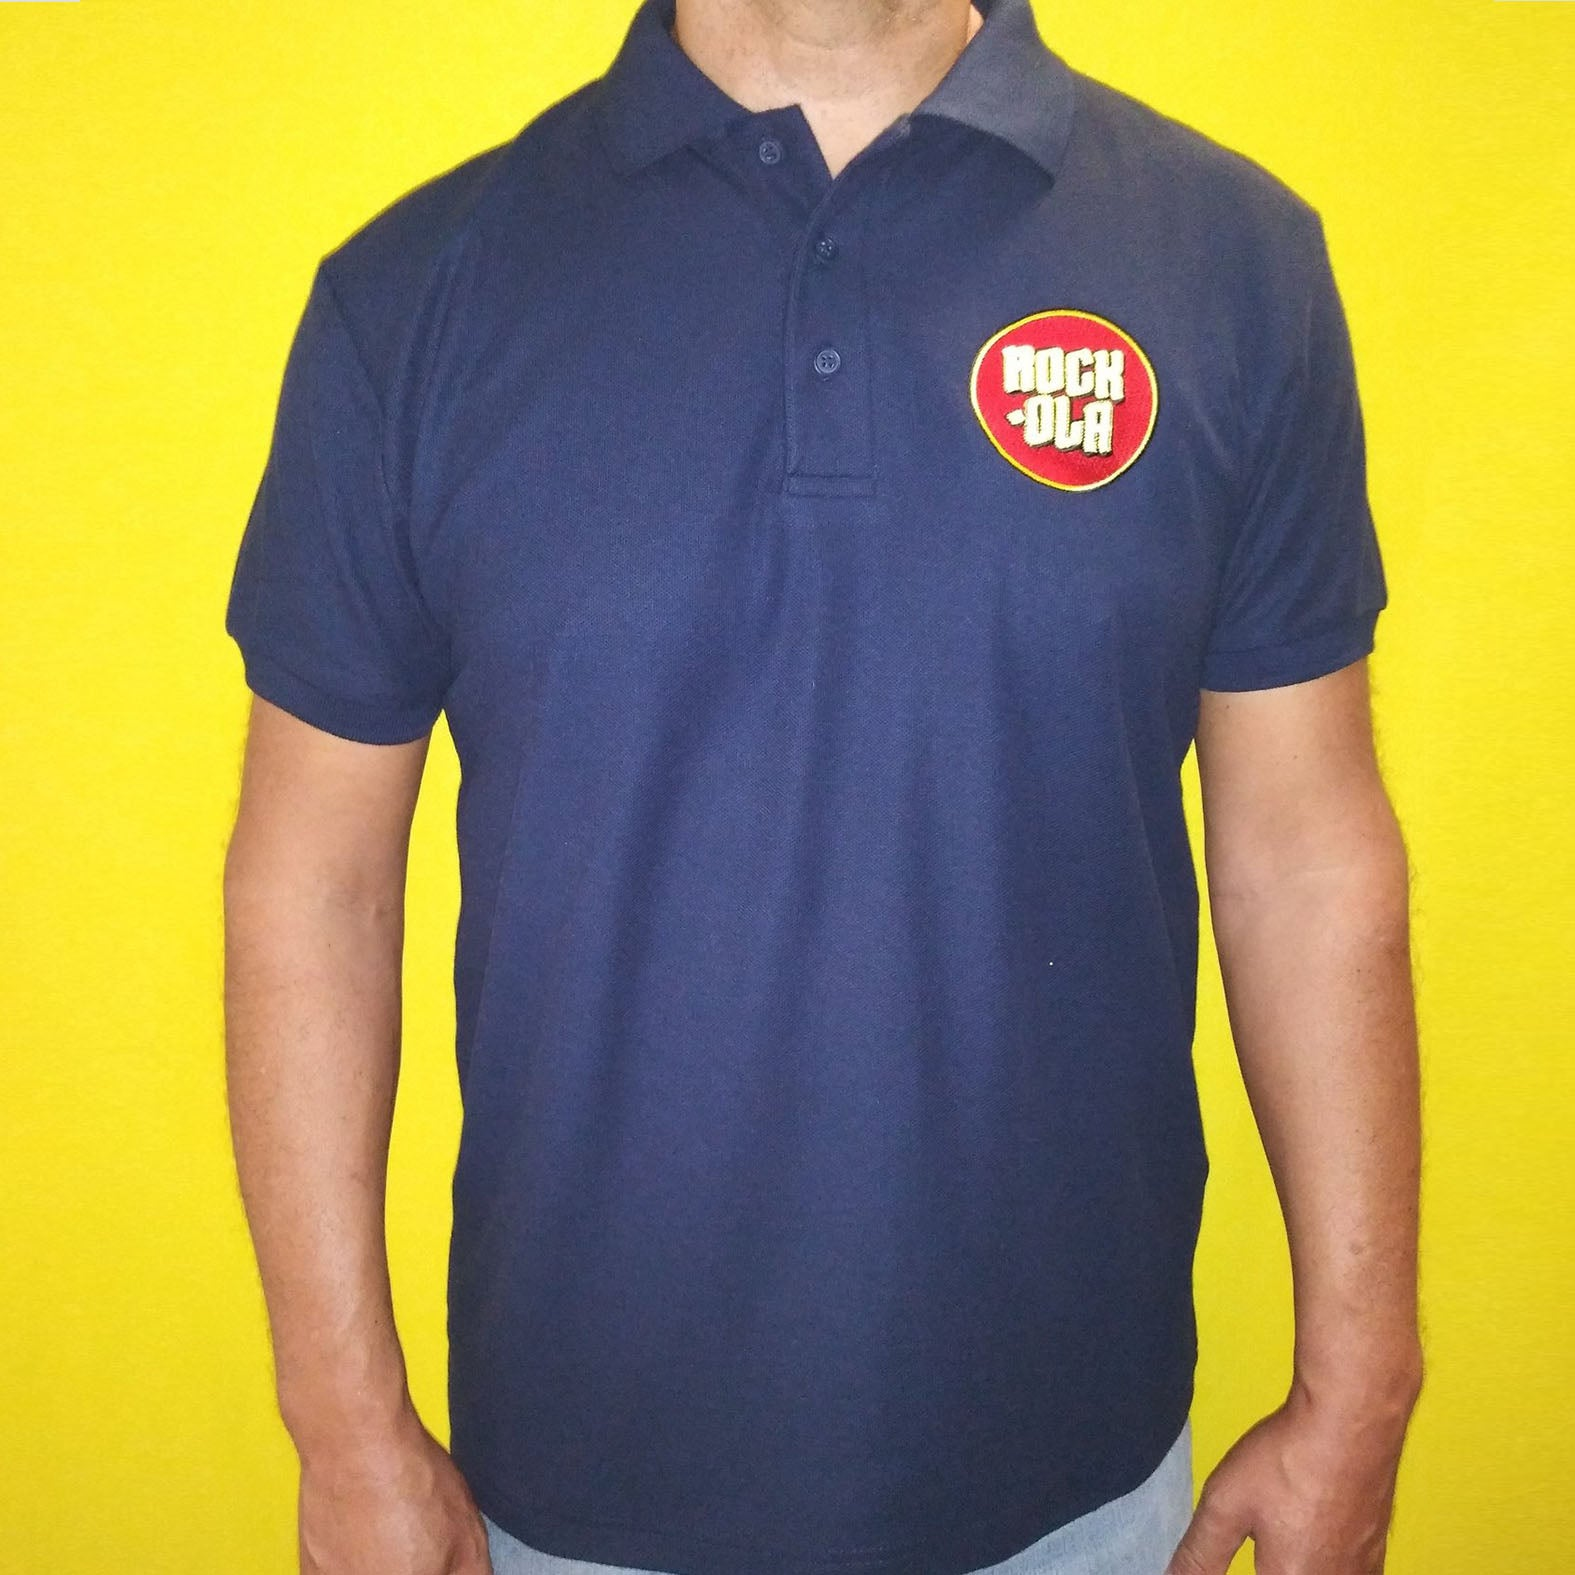 Rock-Ola Polo Shirt